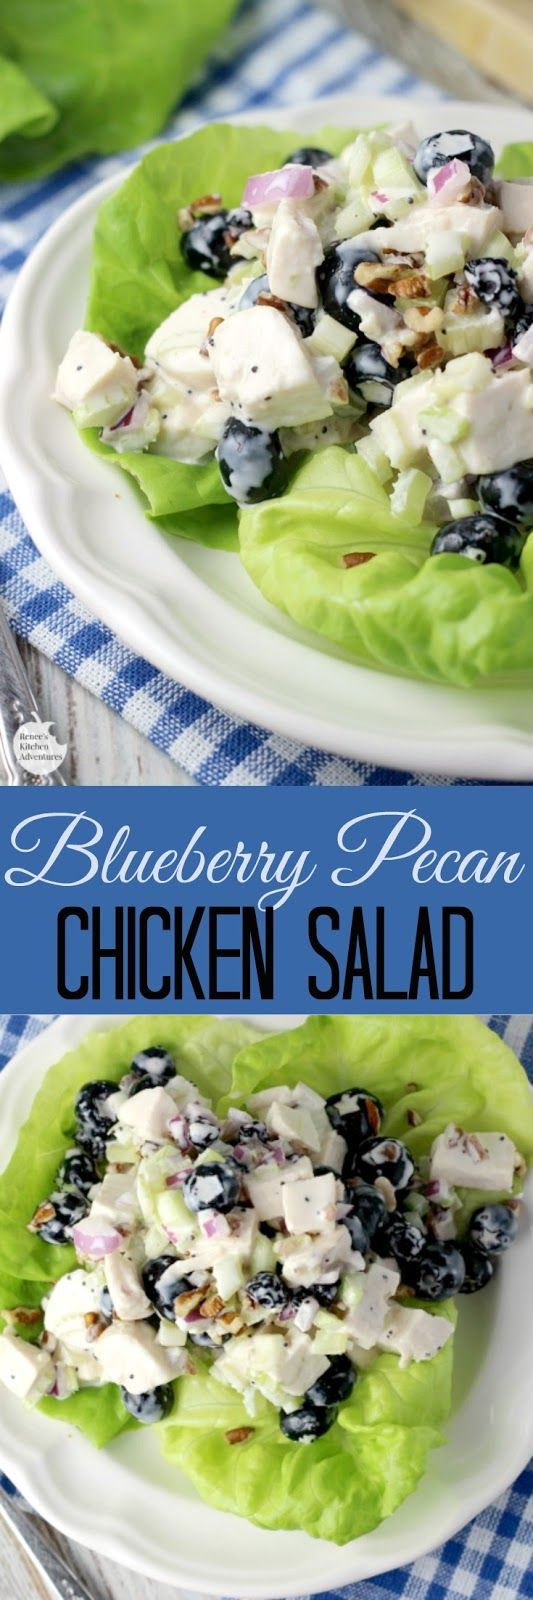 Blueberry Pecan Chicken Salad | by Renee's Kitchen Adventures - easy recipe for a creamy chicken salad made with plump, sweet blueberries and crunchy pecans! #BlueberryToss #FWCon